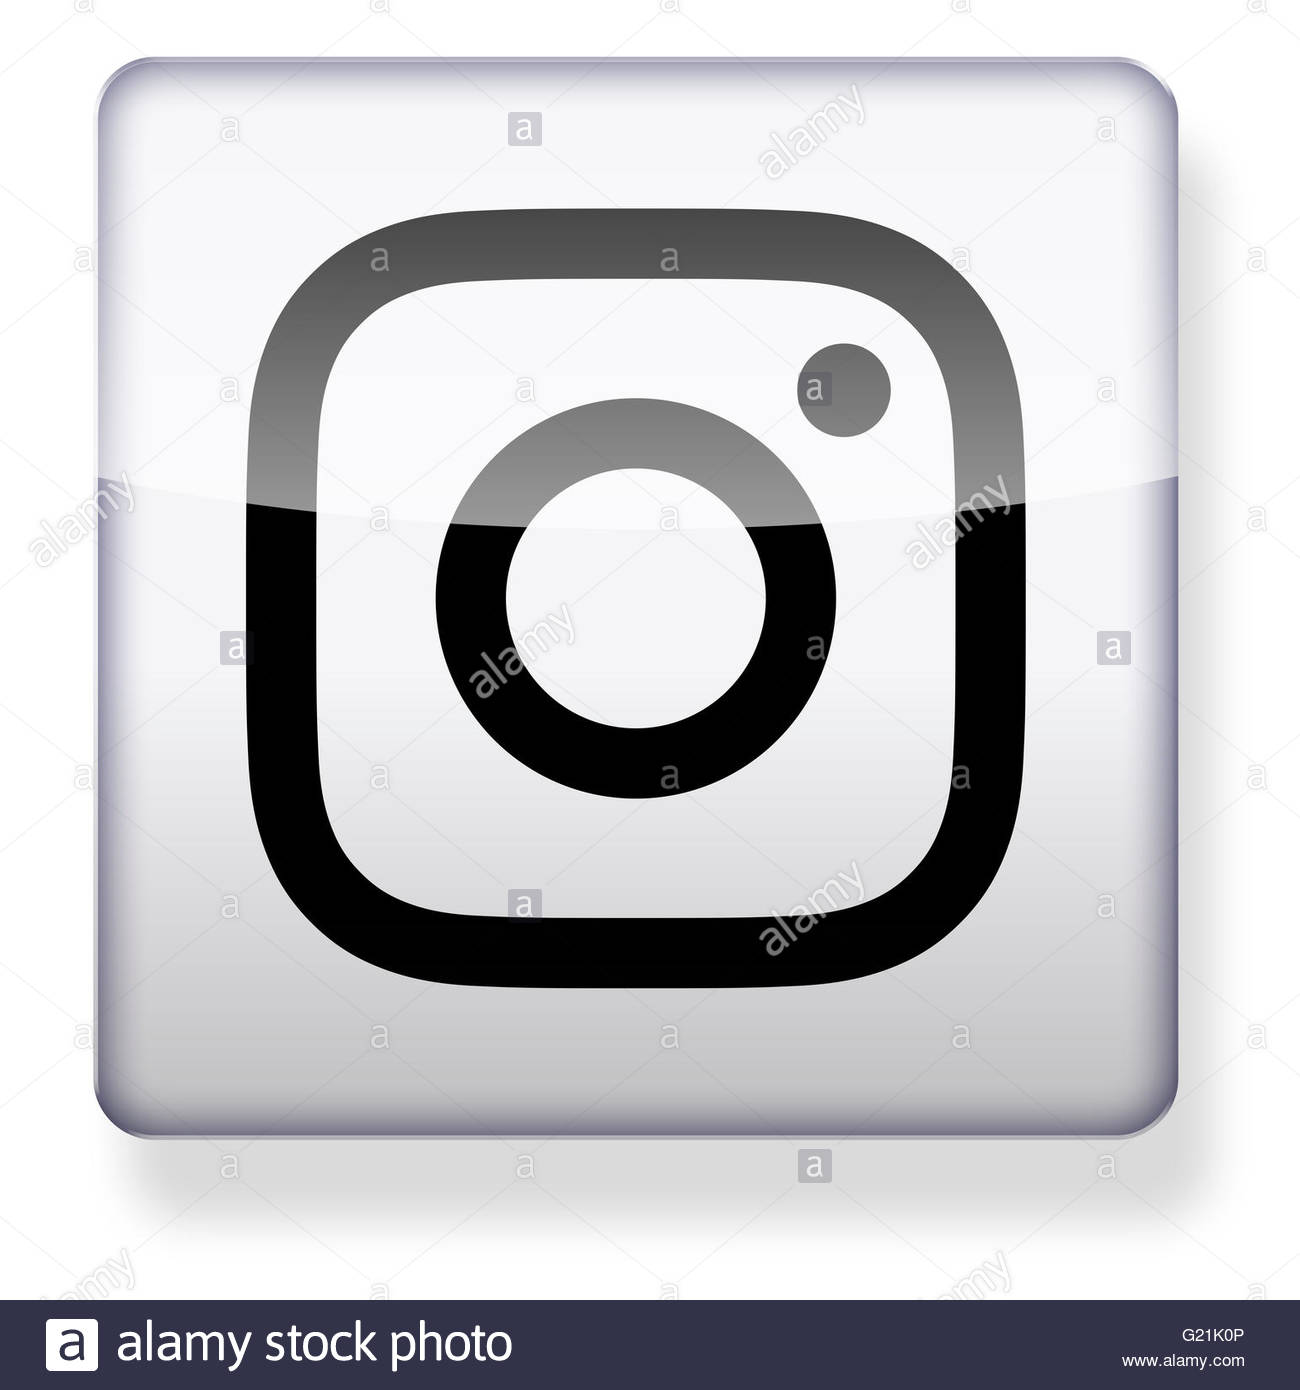 New instagram icon clipart clip art freeuse library New Instagram Logo As An App Icon. Clipping Path Included Stock ... clip art freeuse library